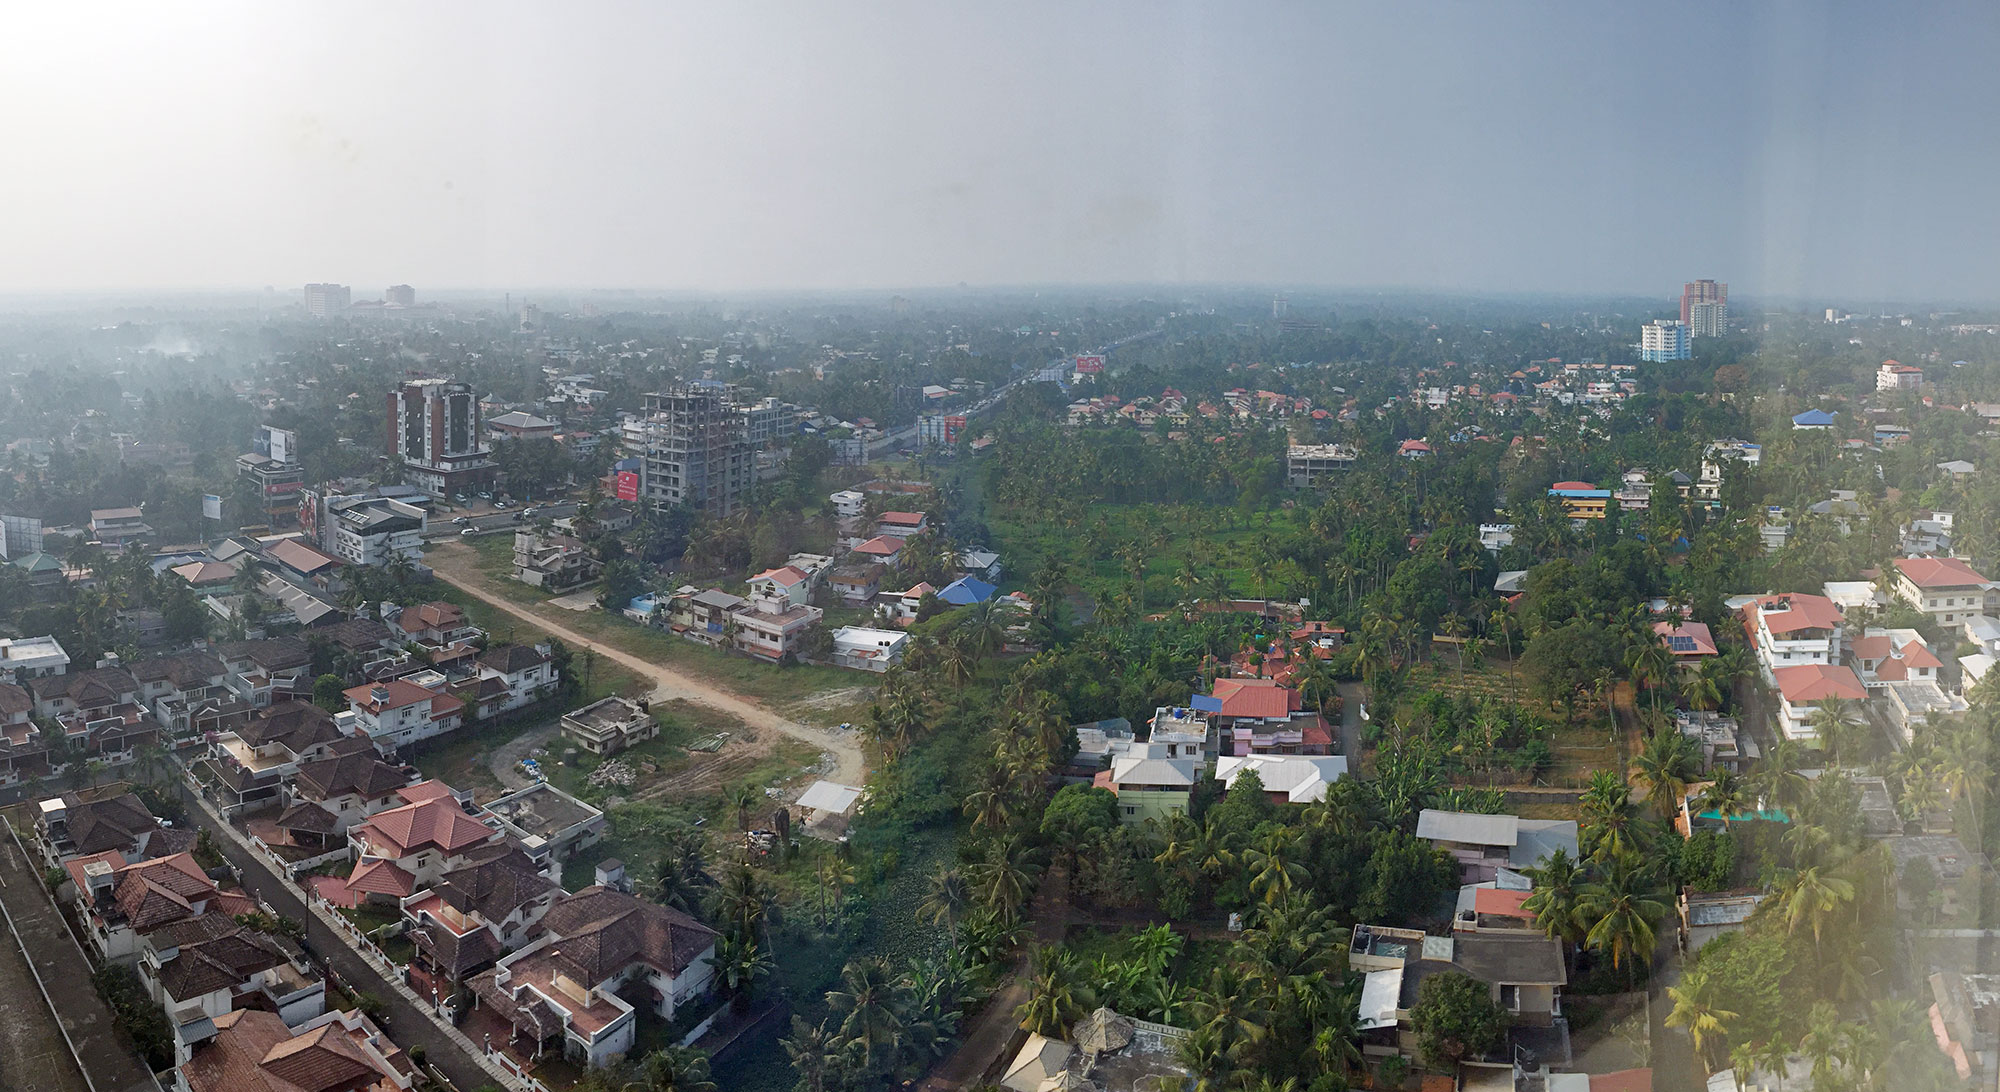 Looking out of the window down on Kochi from the Marriott.